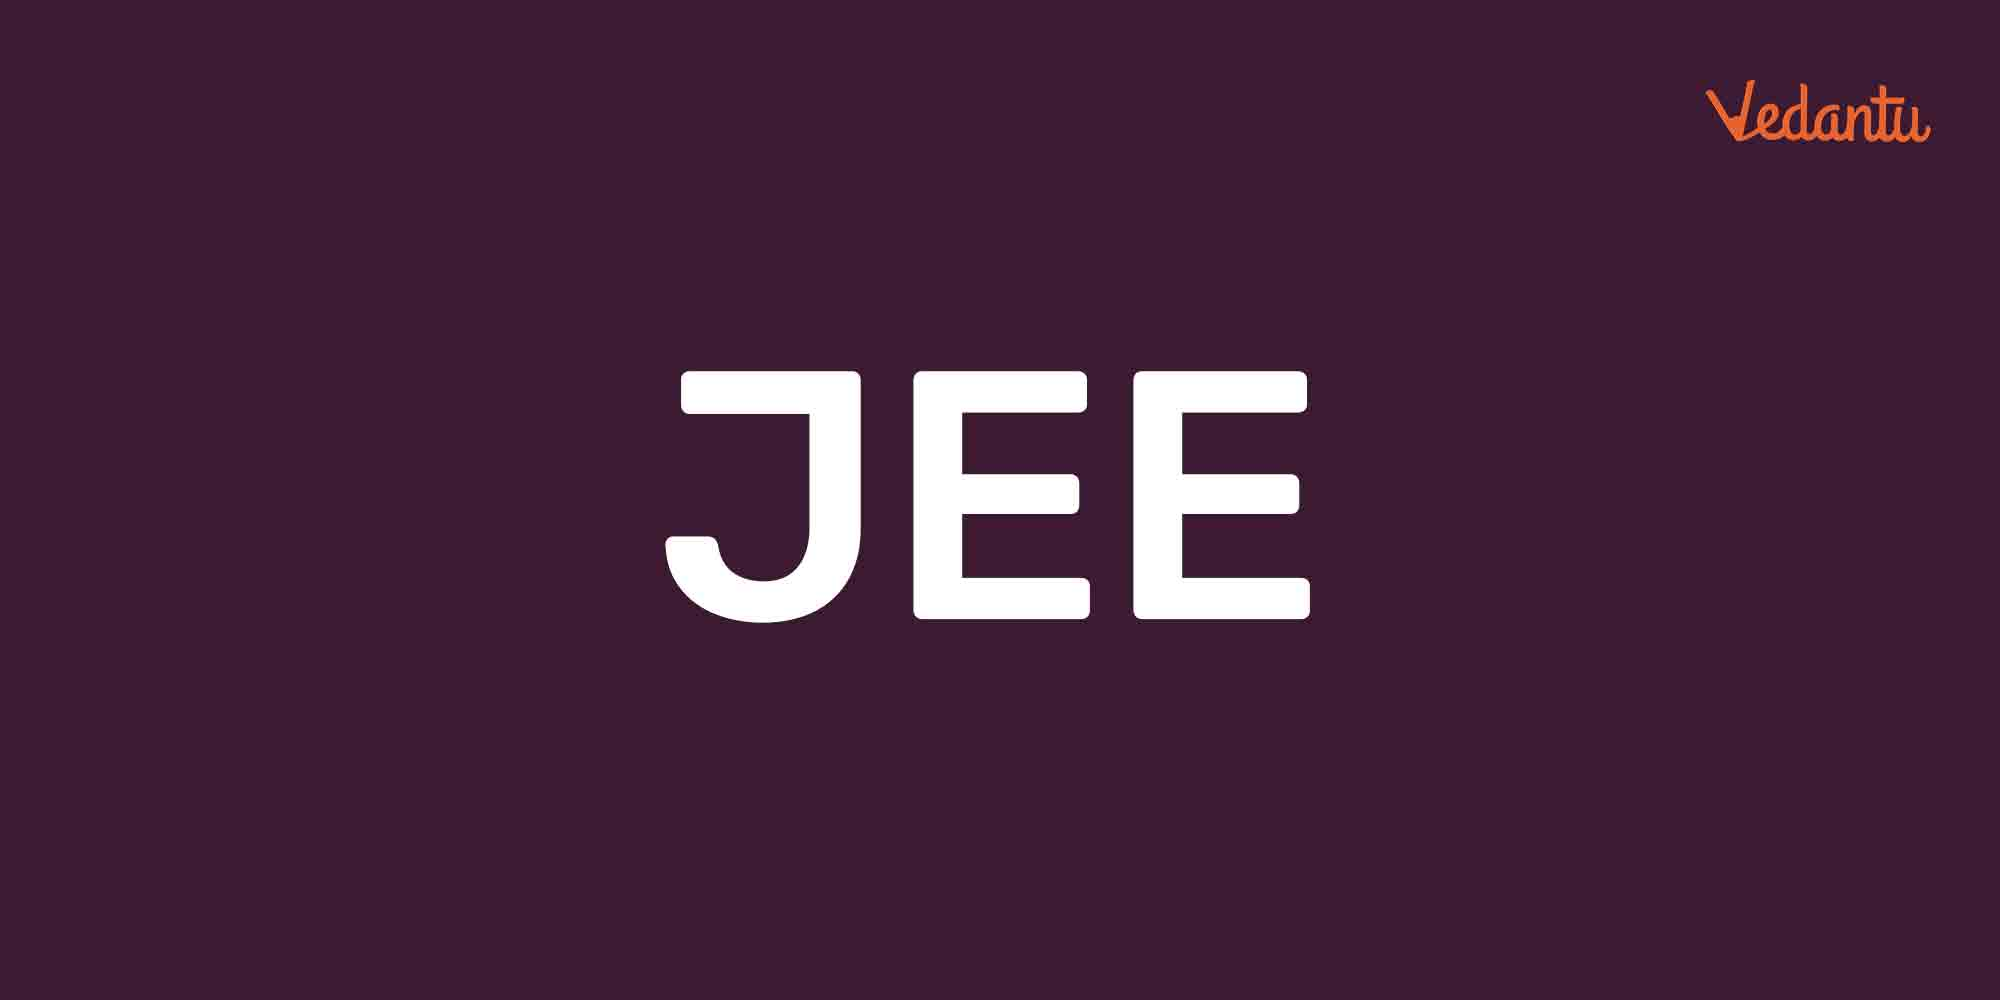 How to Prepare for JEE Main 2020 in 6 Months?